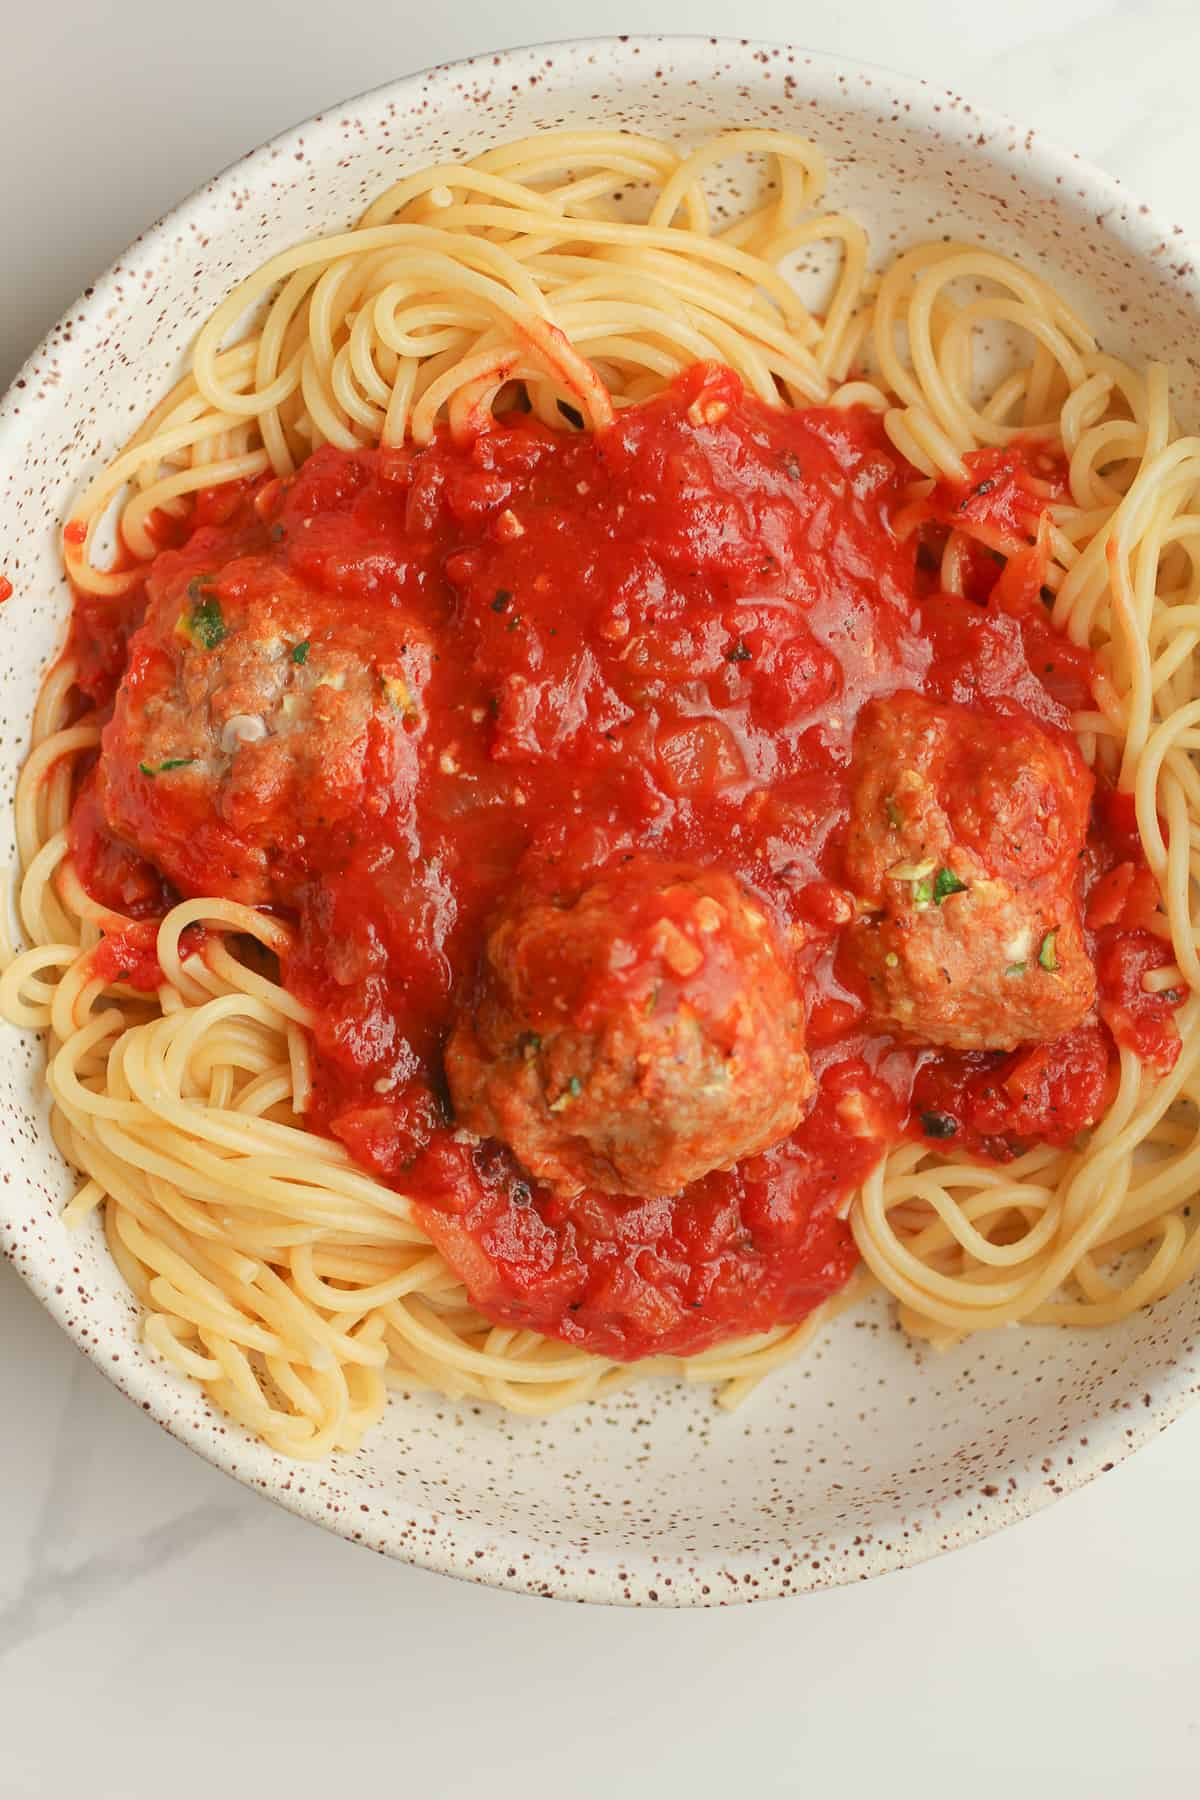 A bowl of the spaghetti with sauce and meatballs.